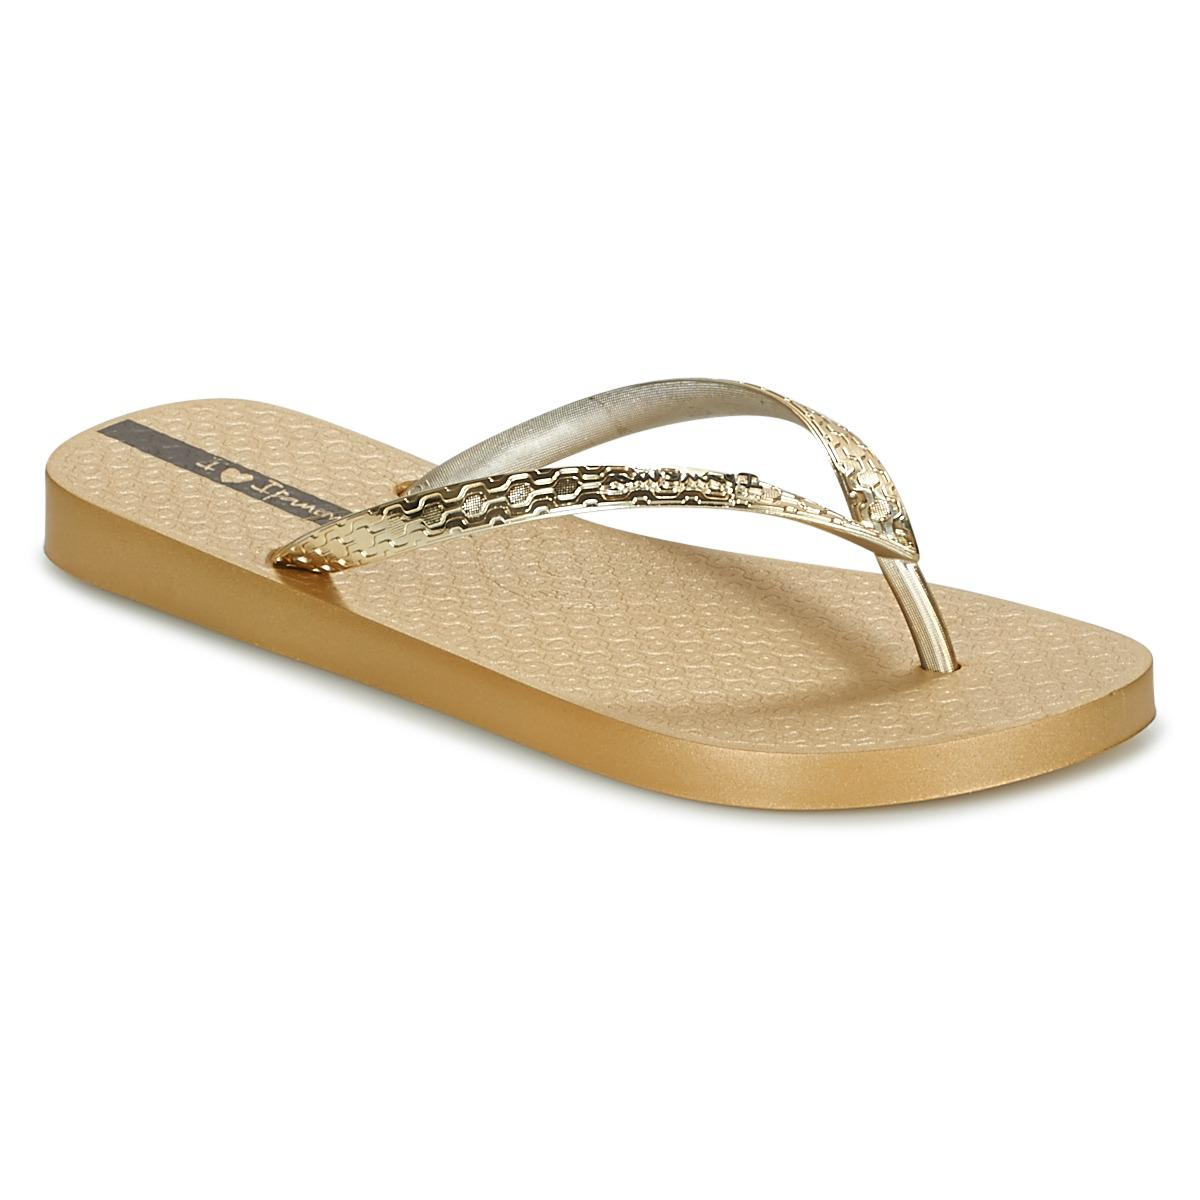 f51f28352 Ipanema Glam Women s Flip Flops   Sandals (shoes) In Gold in ...